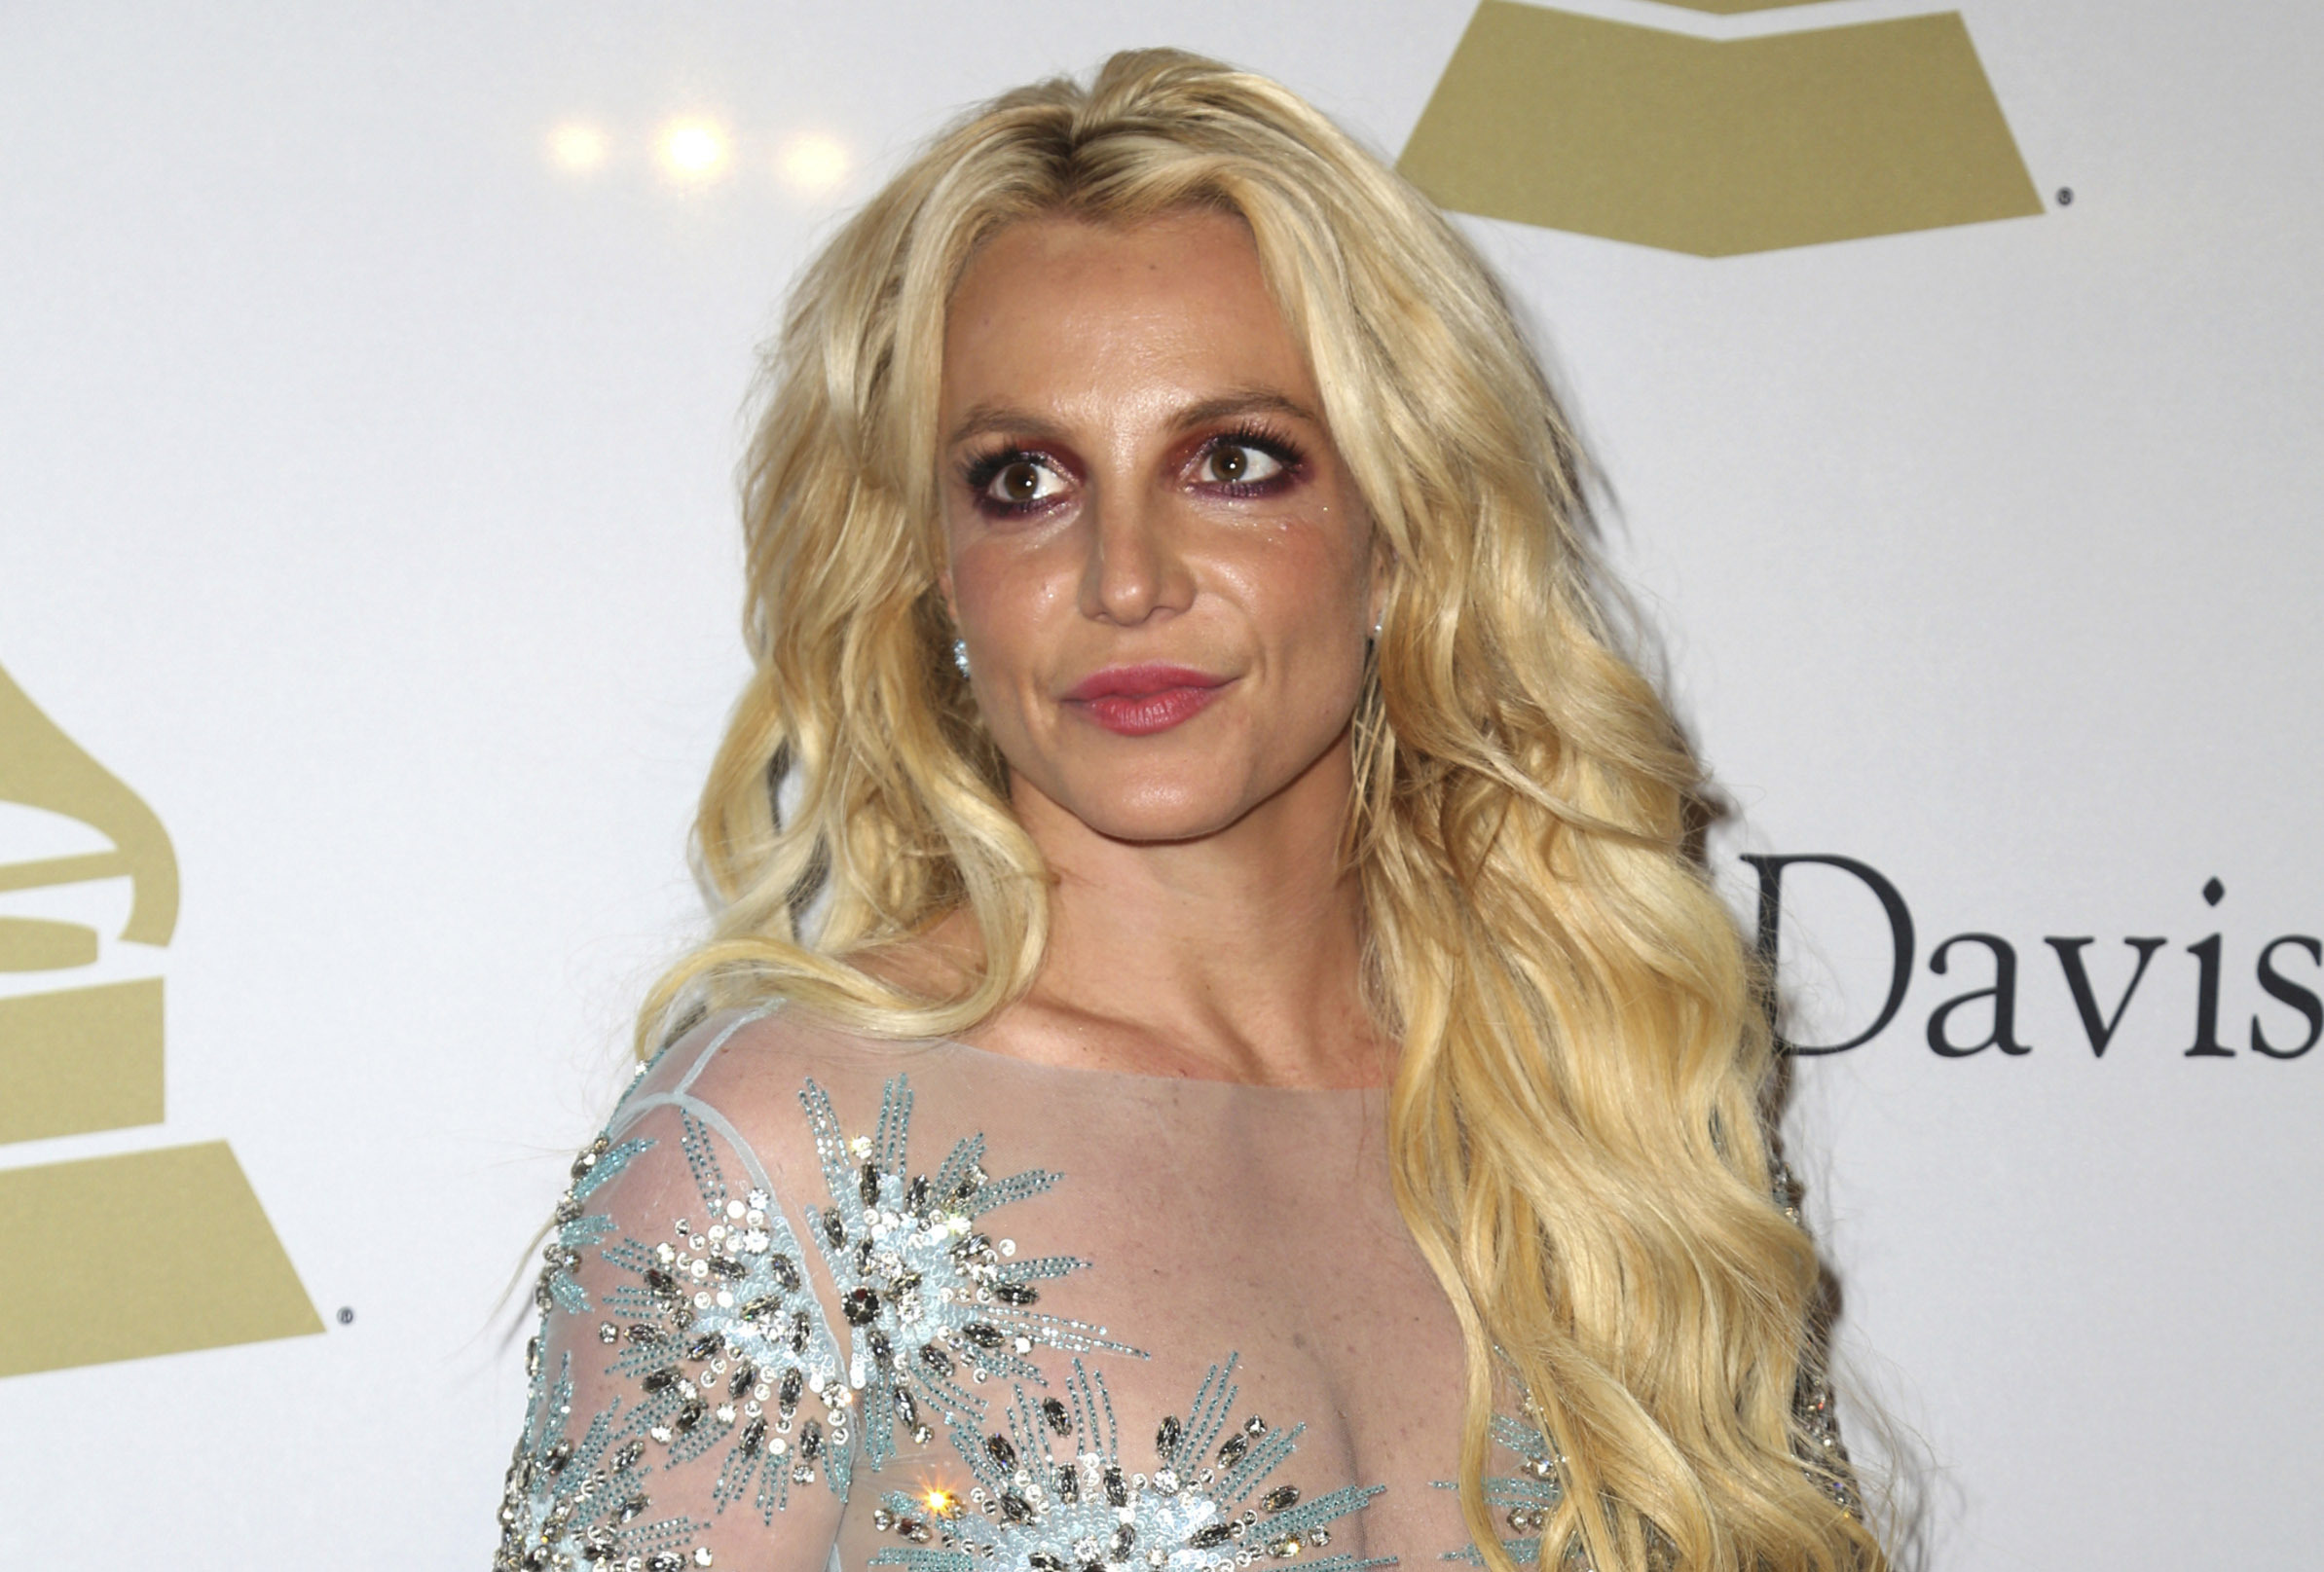 Britney Spears speaks out against 'abusive' conservatorship: 'I just want my life back'